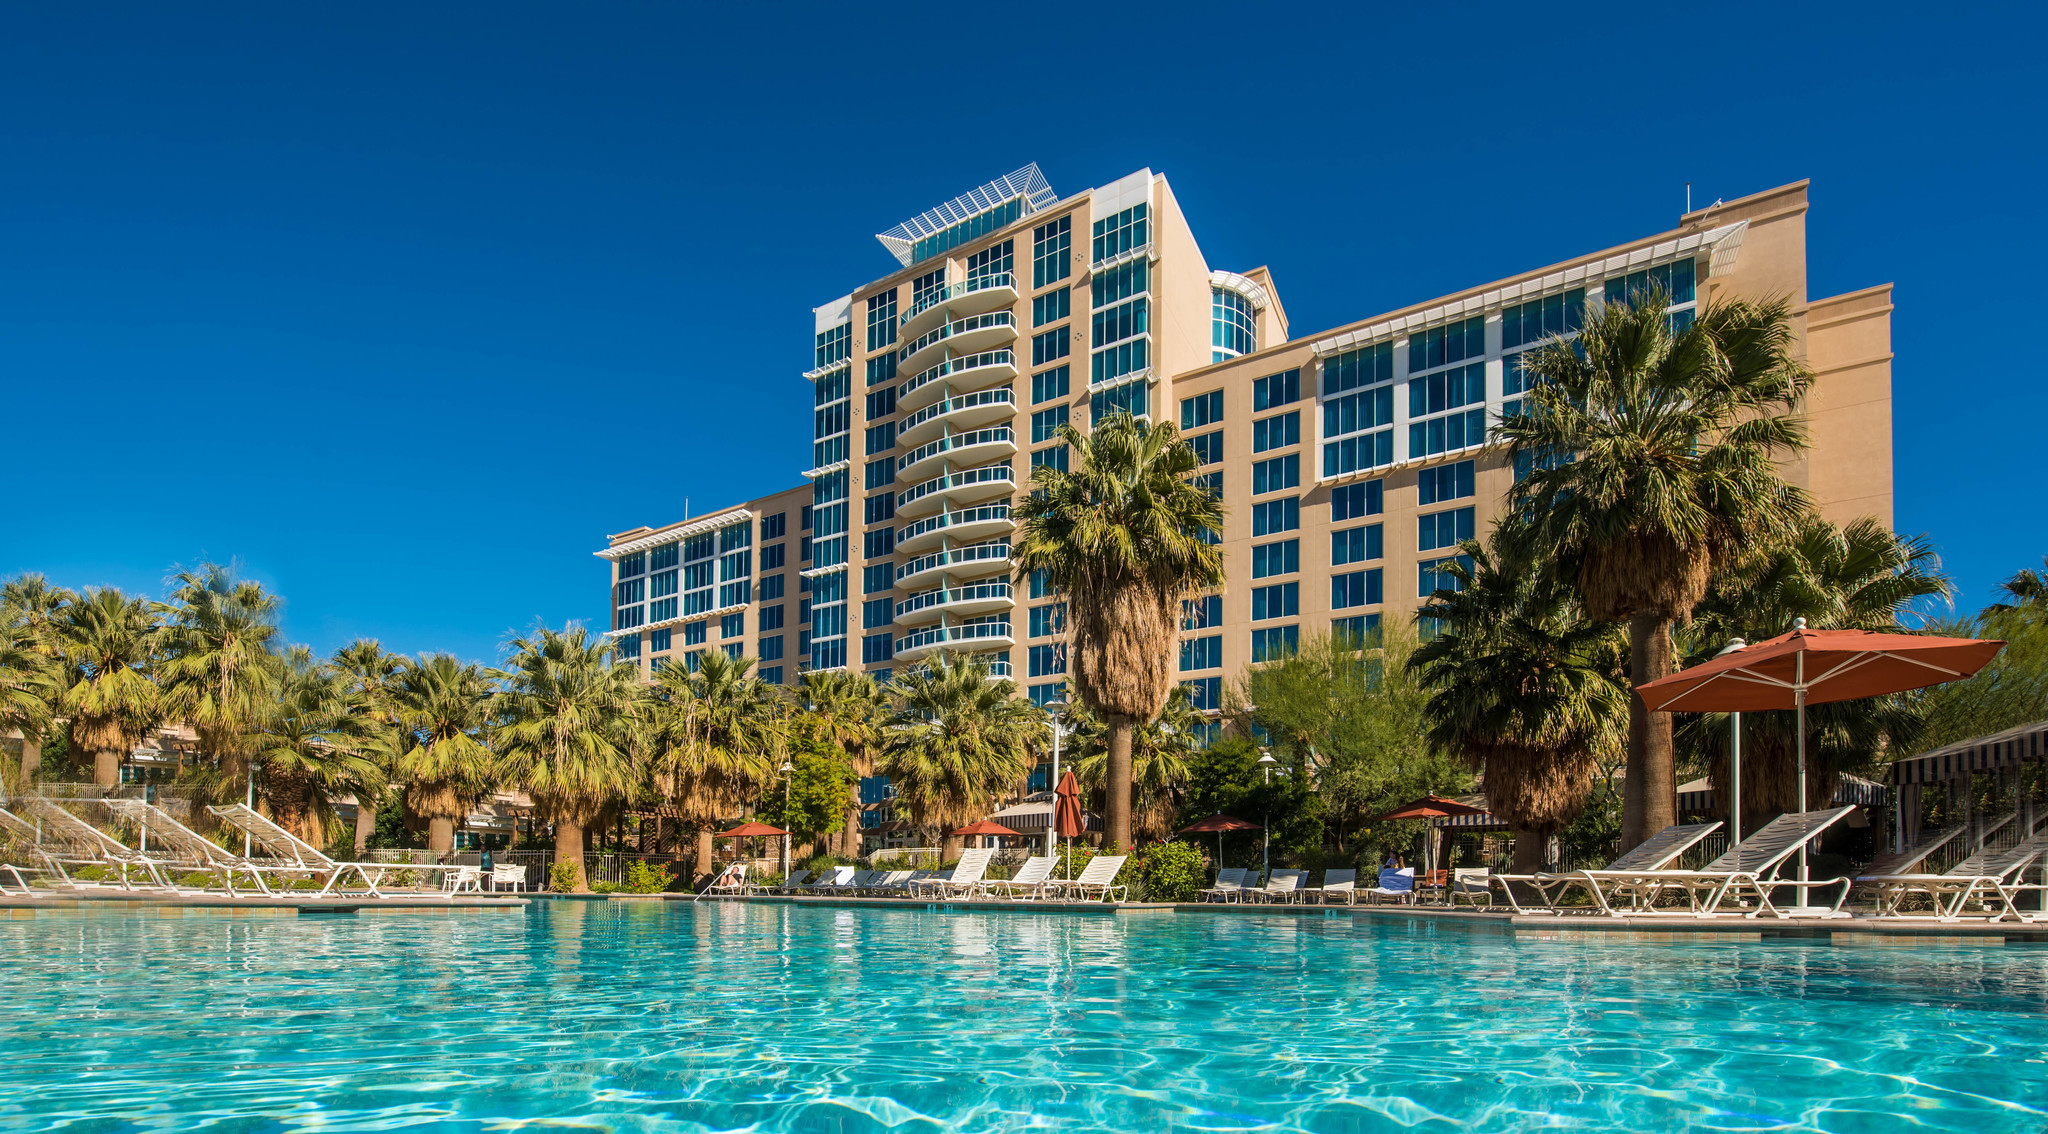 Desert Heats Up With New Casino Hotels, Expansions